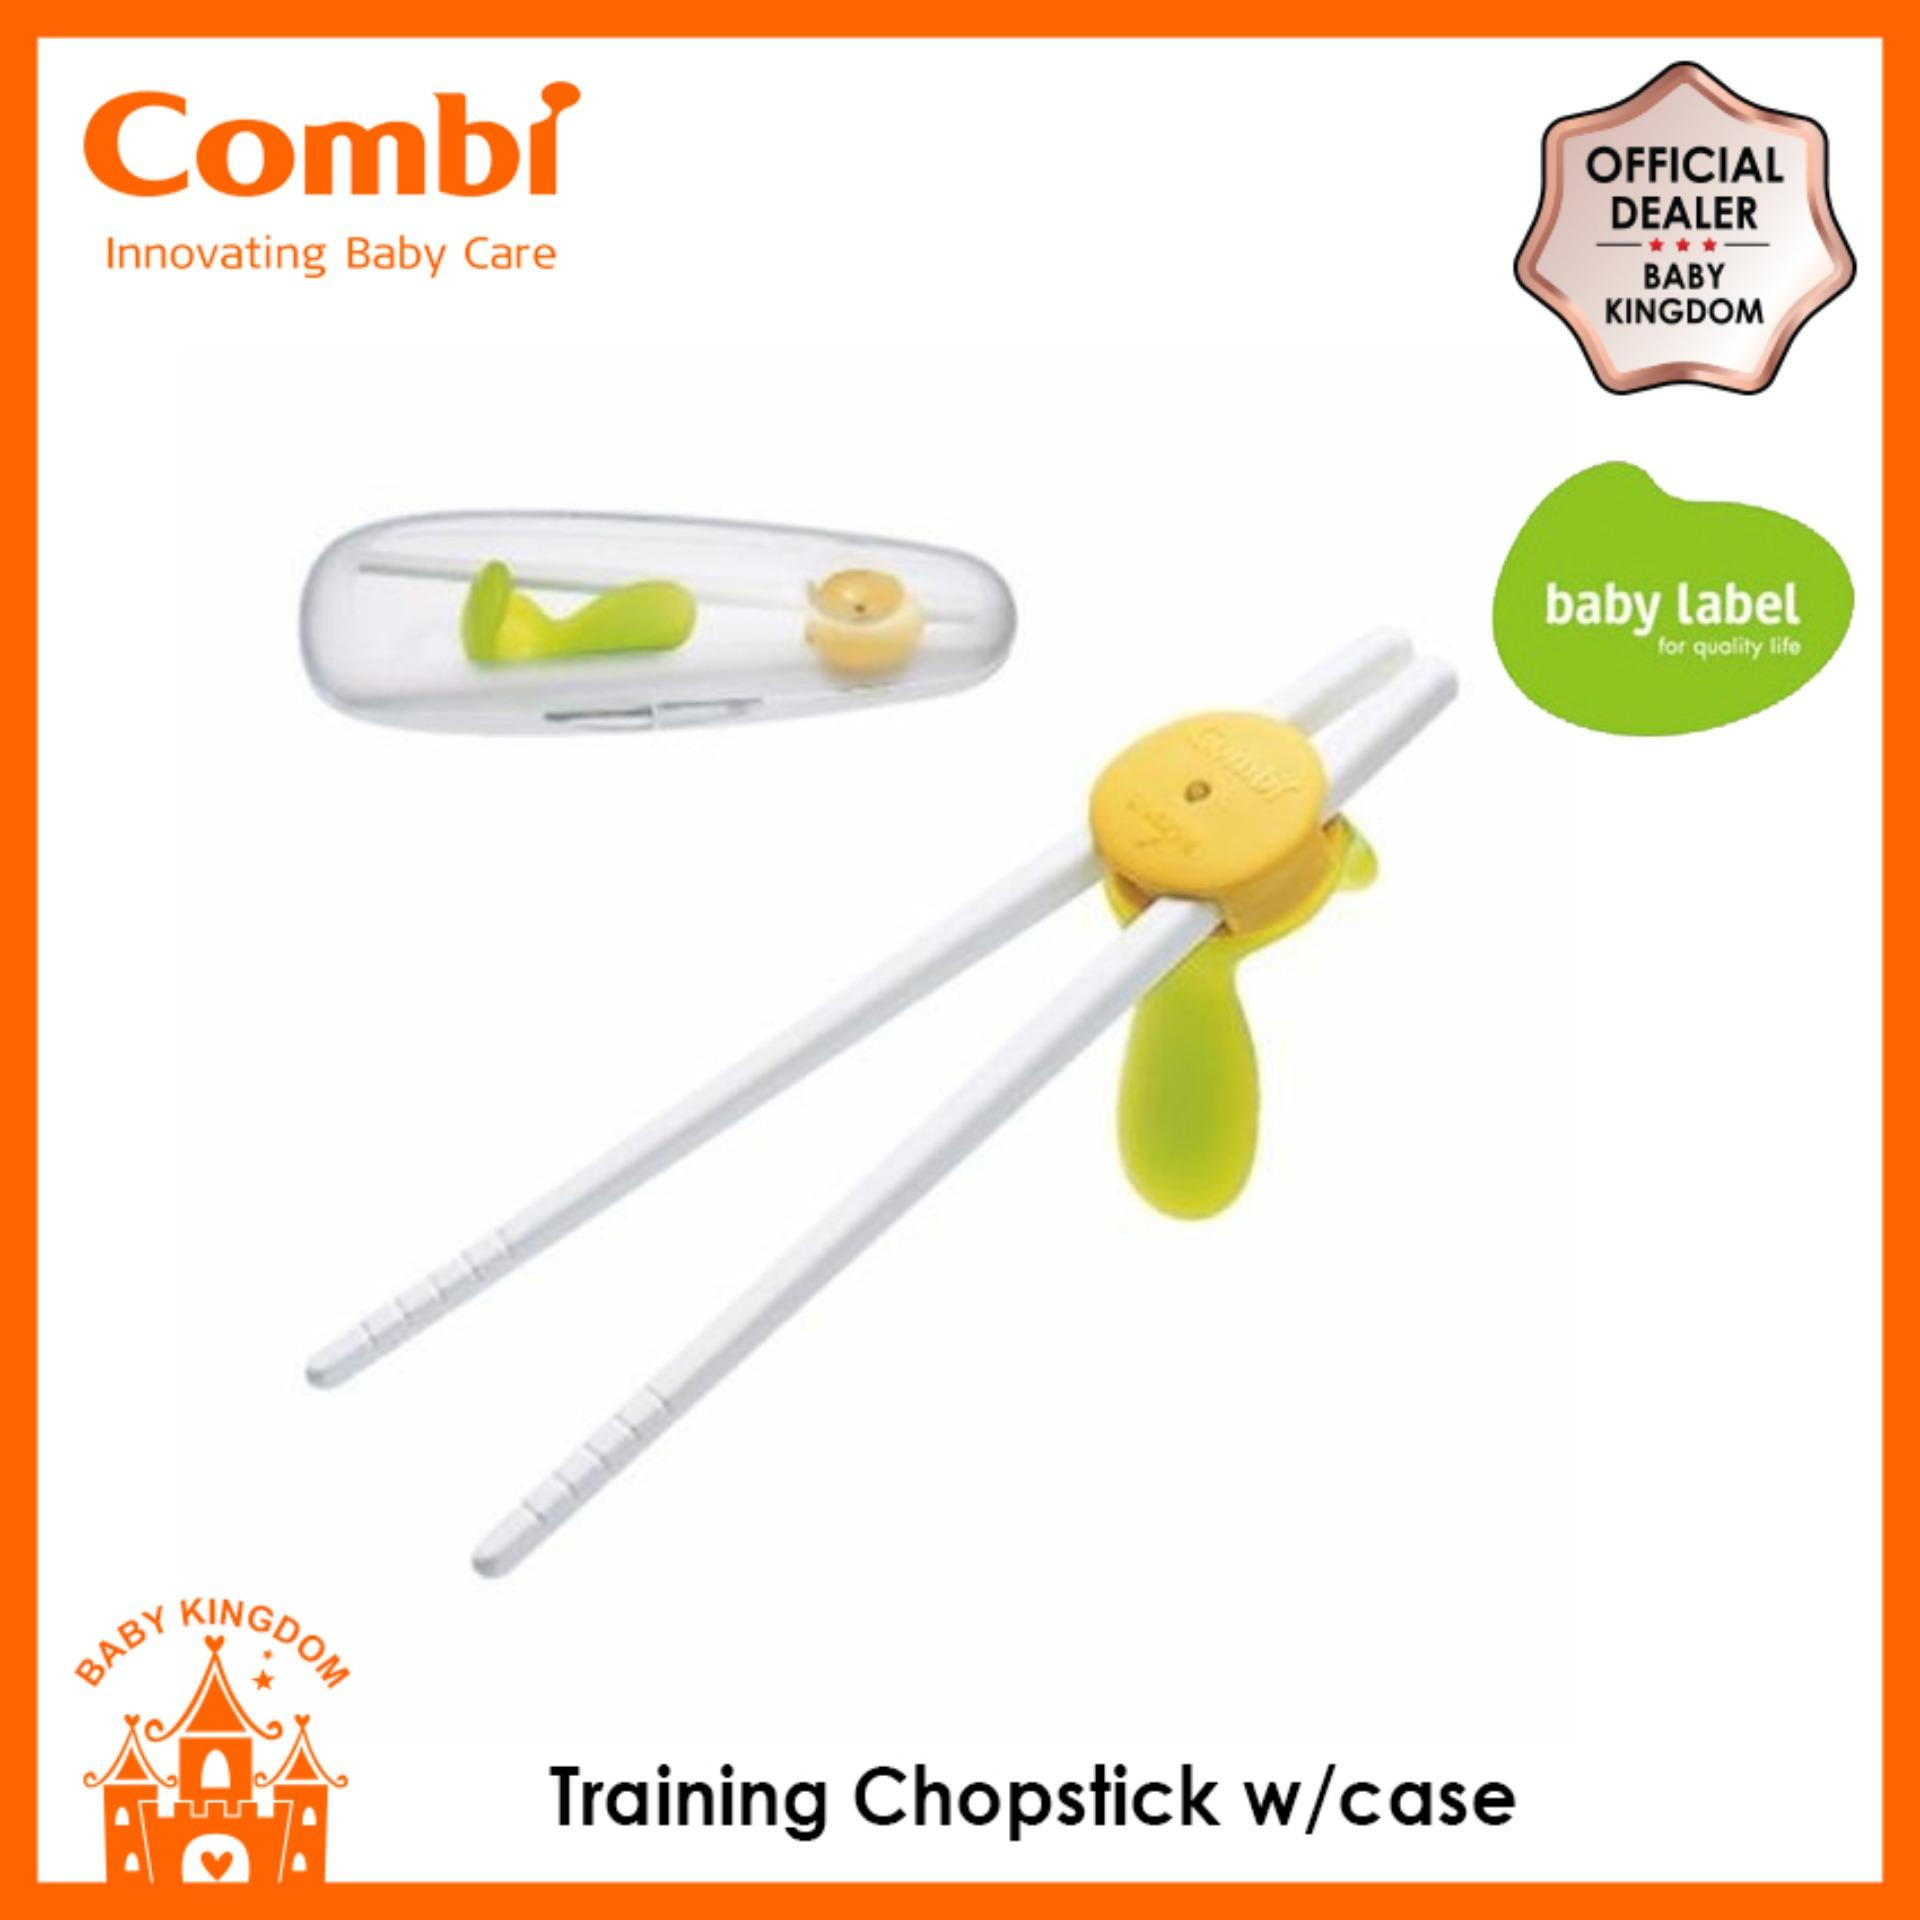 Cheapest Combi Training Chopstick W Case Online